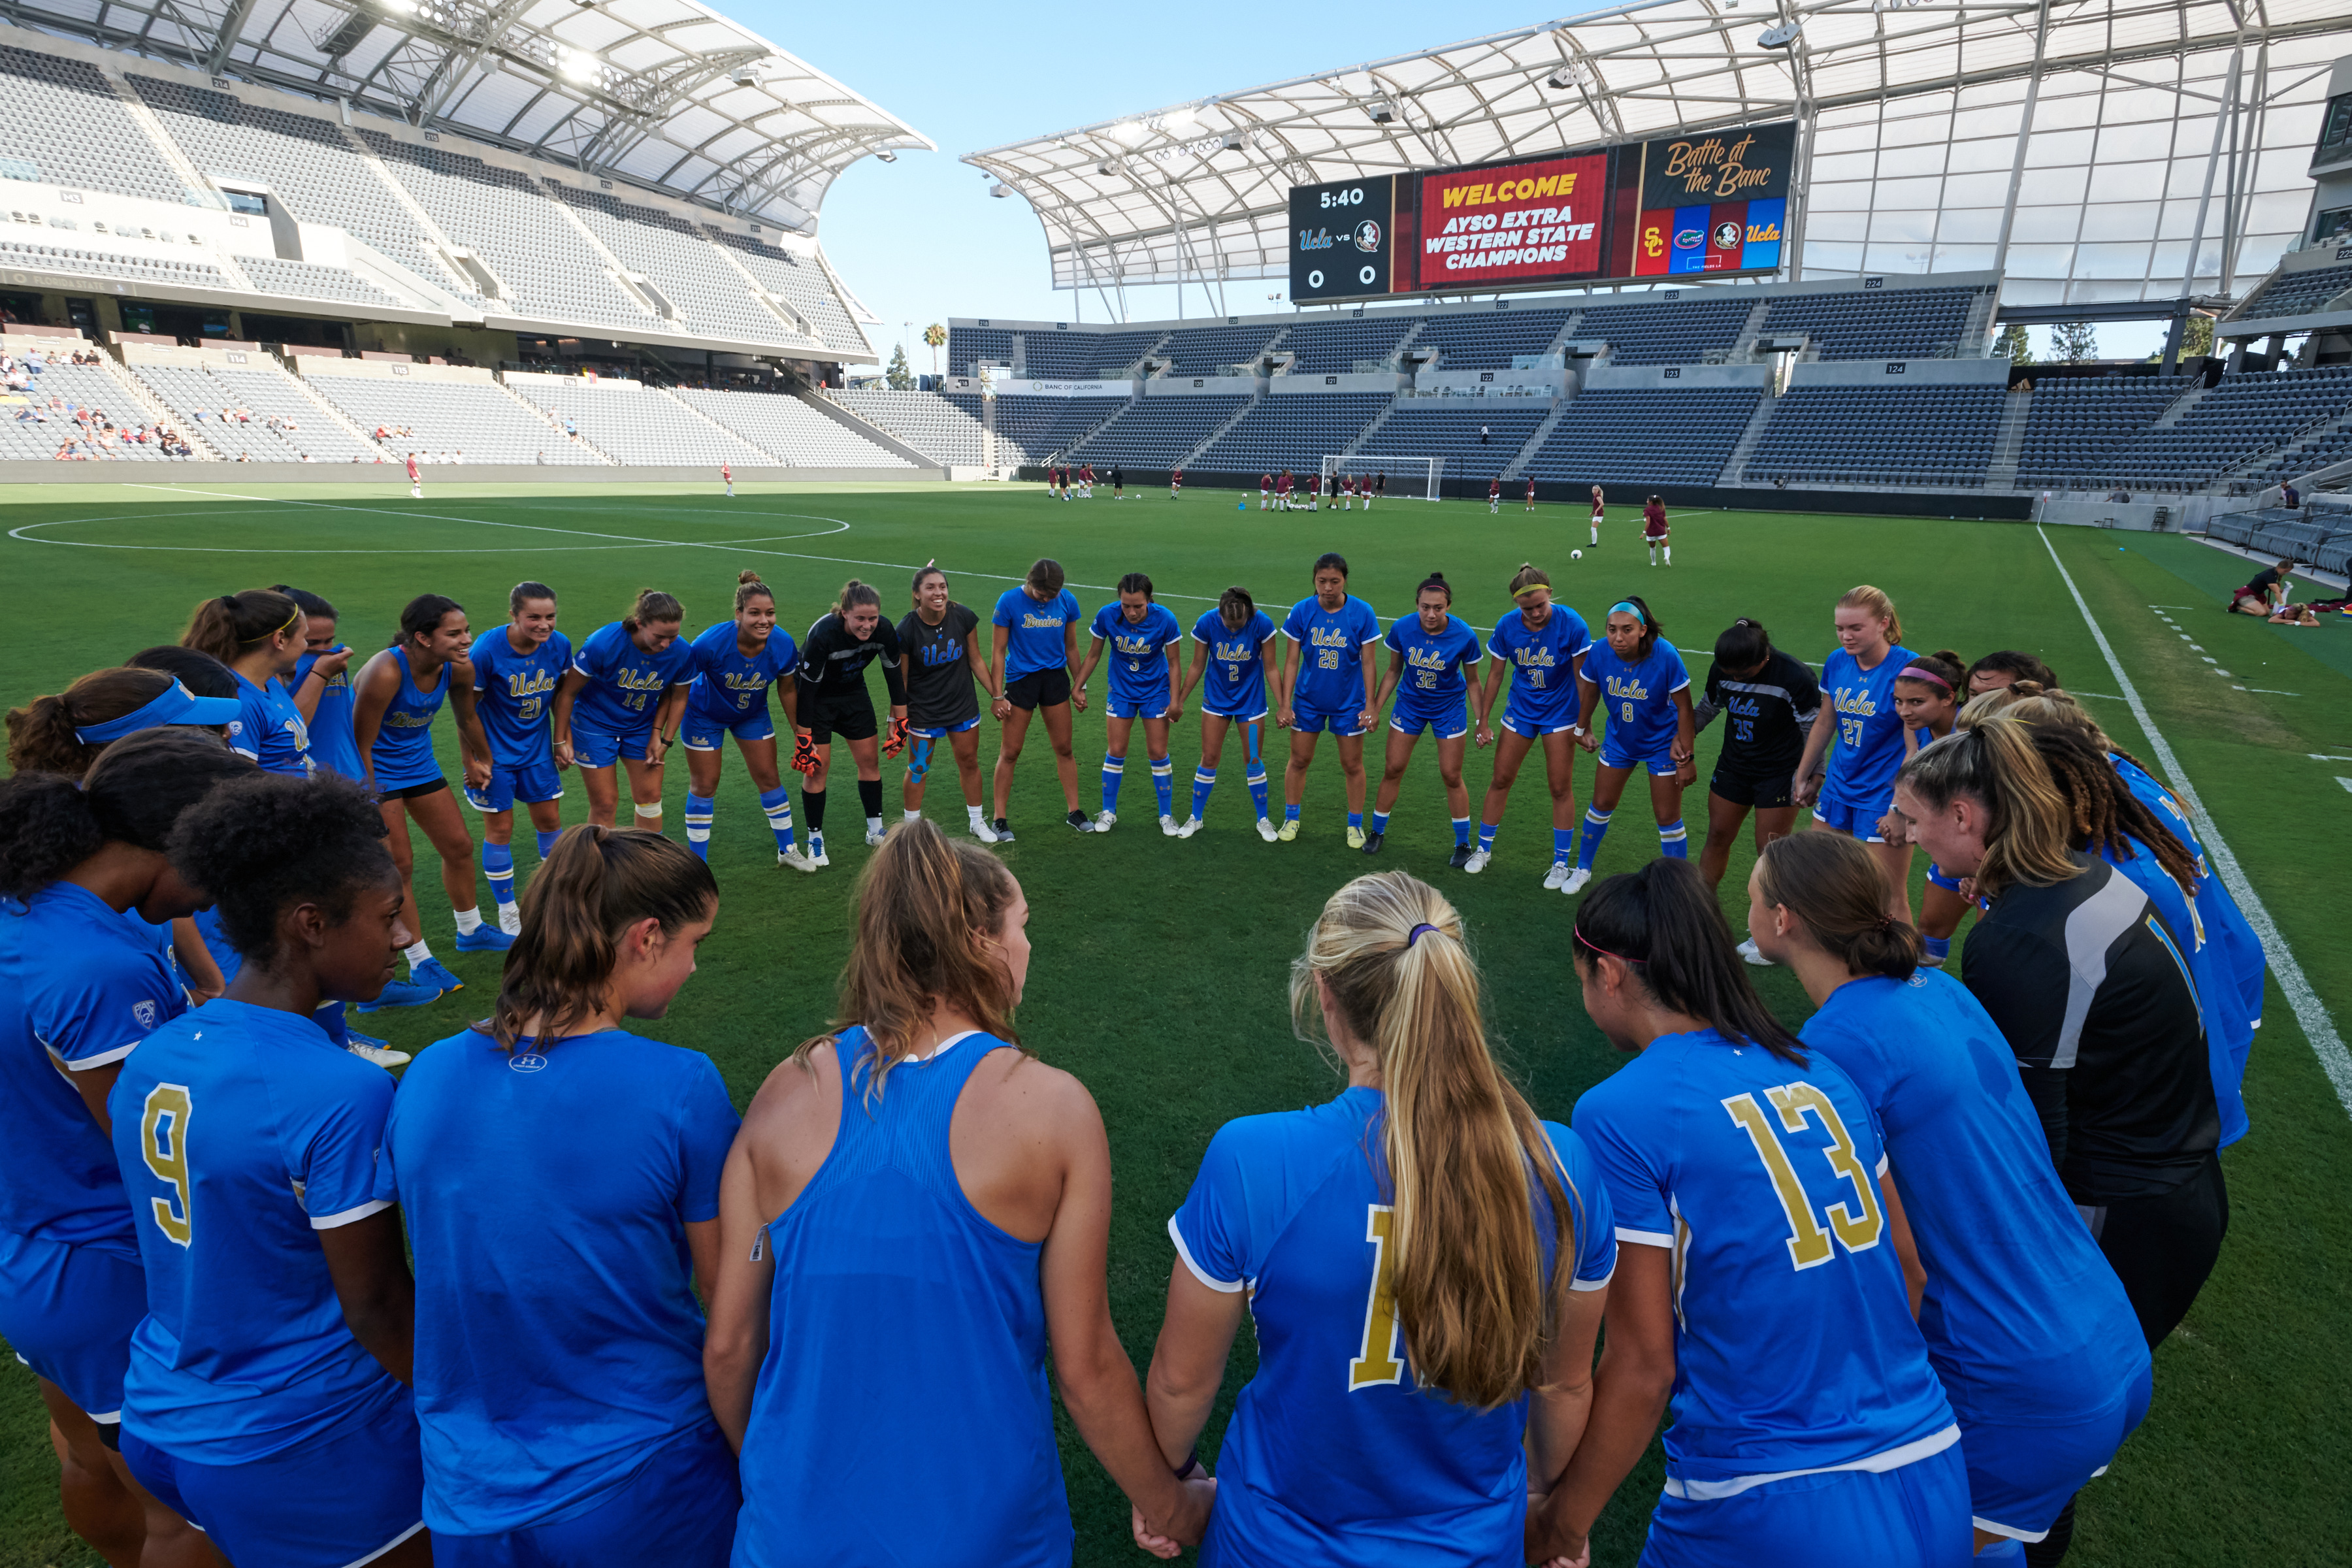 womens non conference soccer action - HD3600×2400